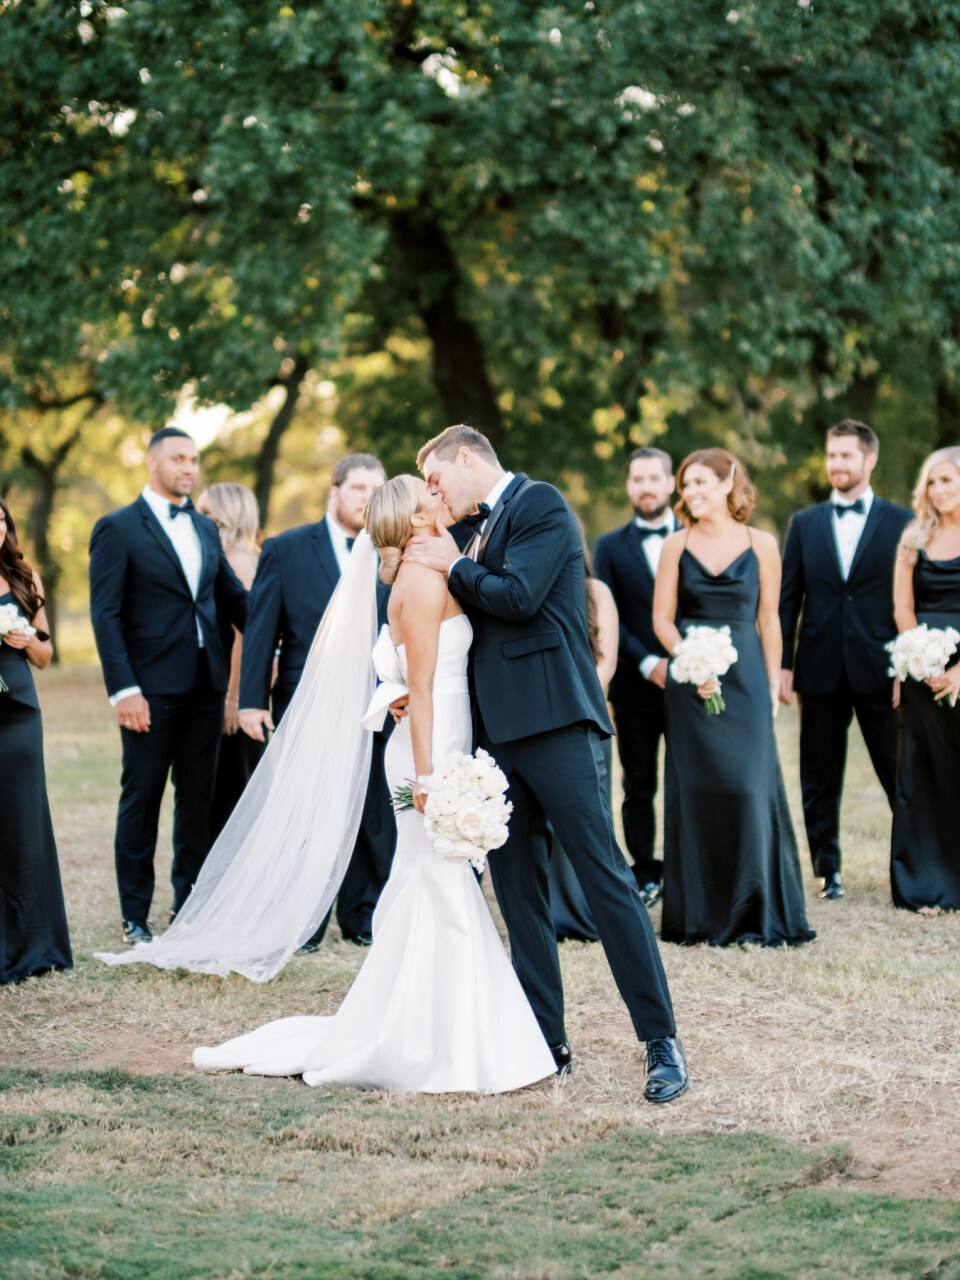 Allen Tsai Texas Wedding Photographer | Alexa Kay Events